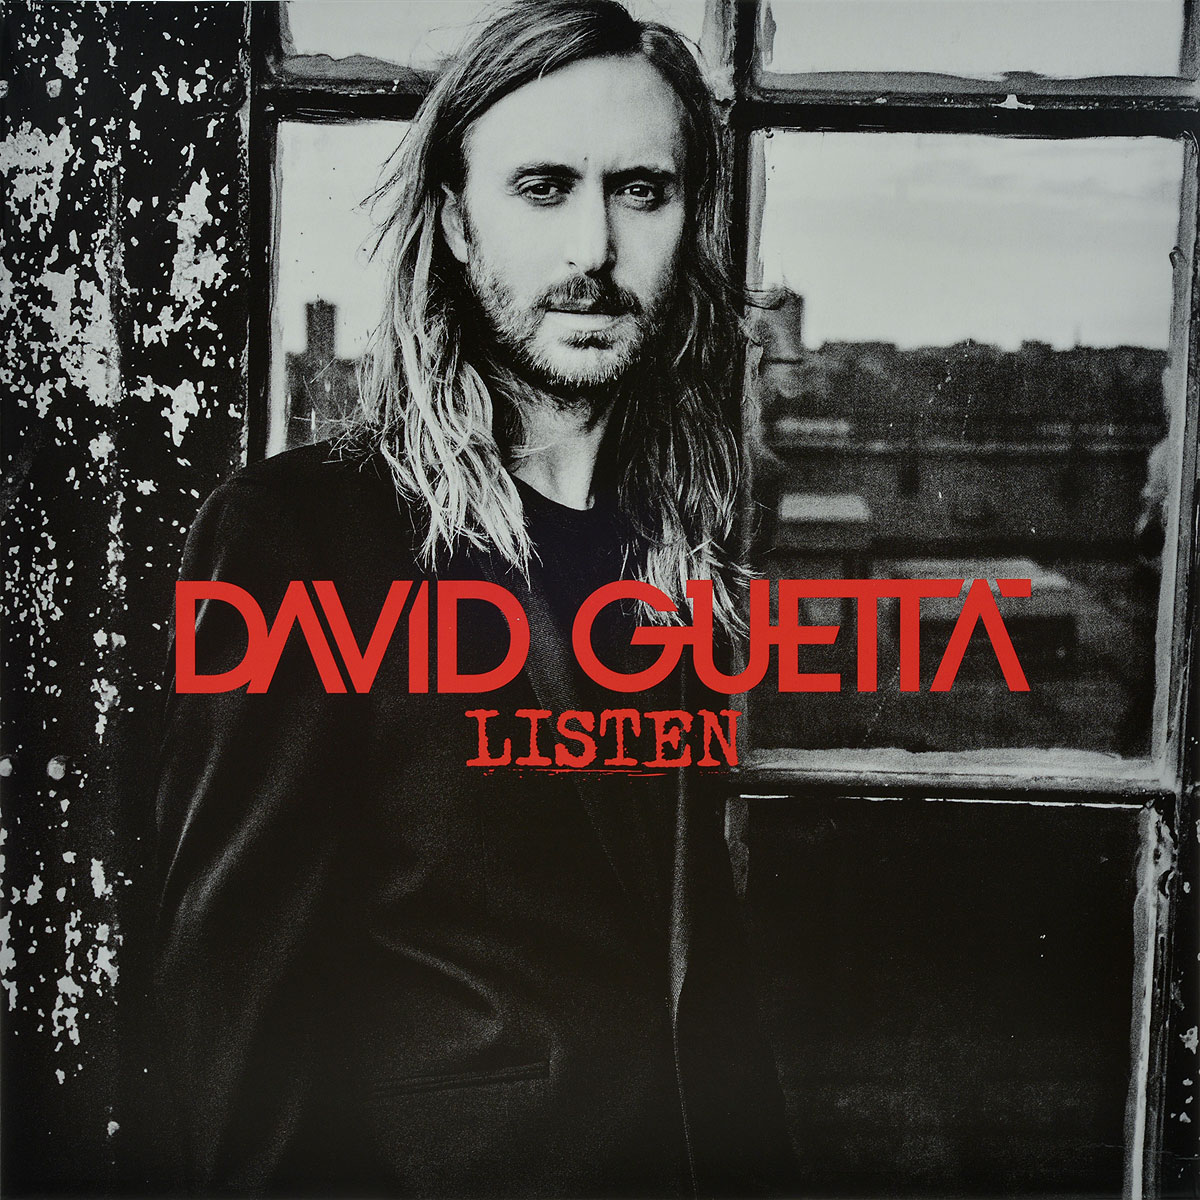 Дэвид Гетта David Guetta. Listen (2 LP) дэвид гетта flo rida ники минаж тайо круз лудакрис afrojack дженифер хадсон jessie j david guetta nothing but the beat 2 lp